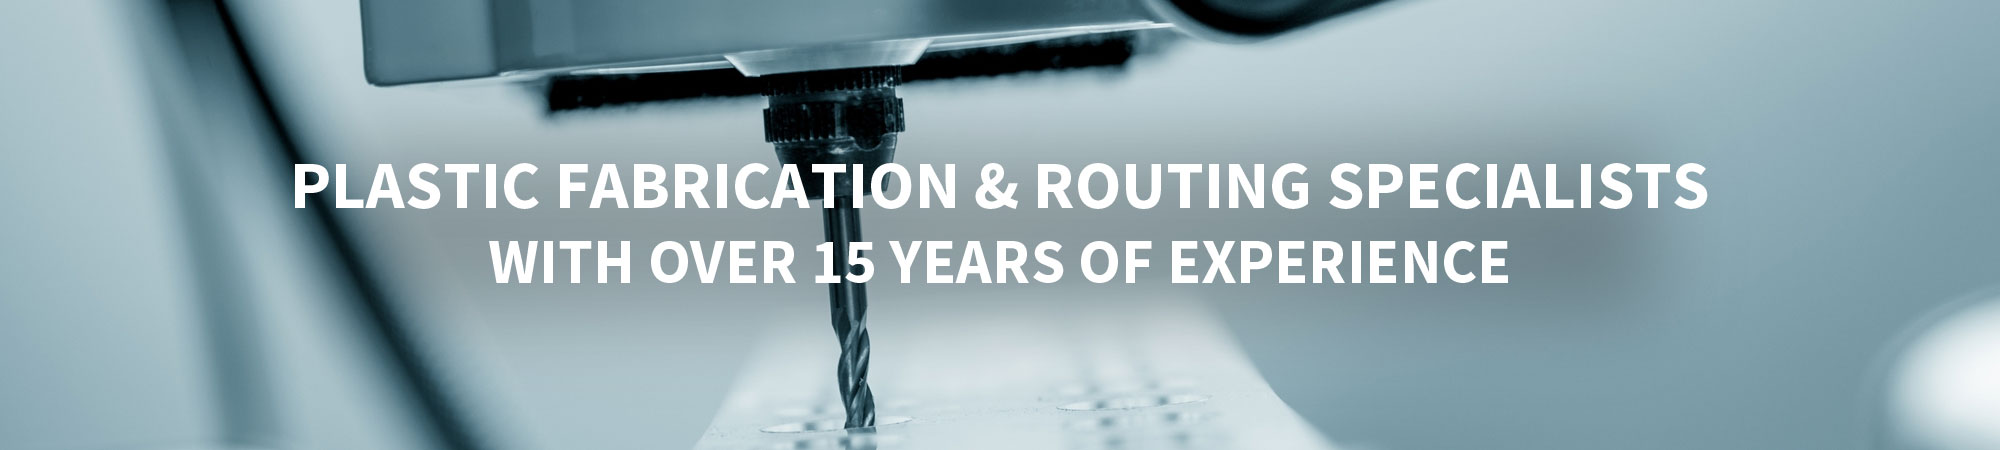 Plastic Fabrication & Routing Specialists with over 15 Years of Experience